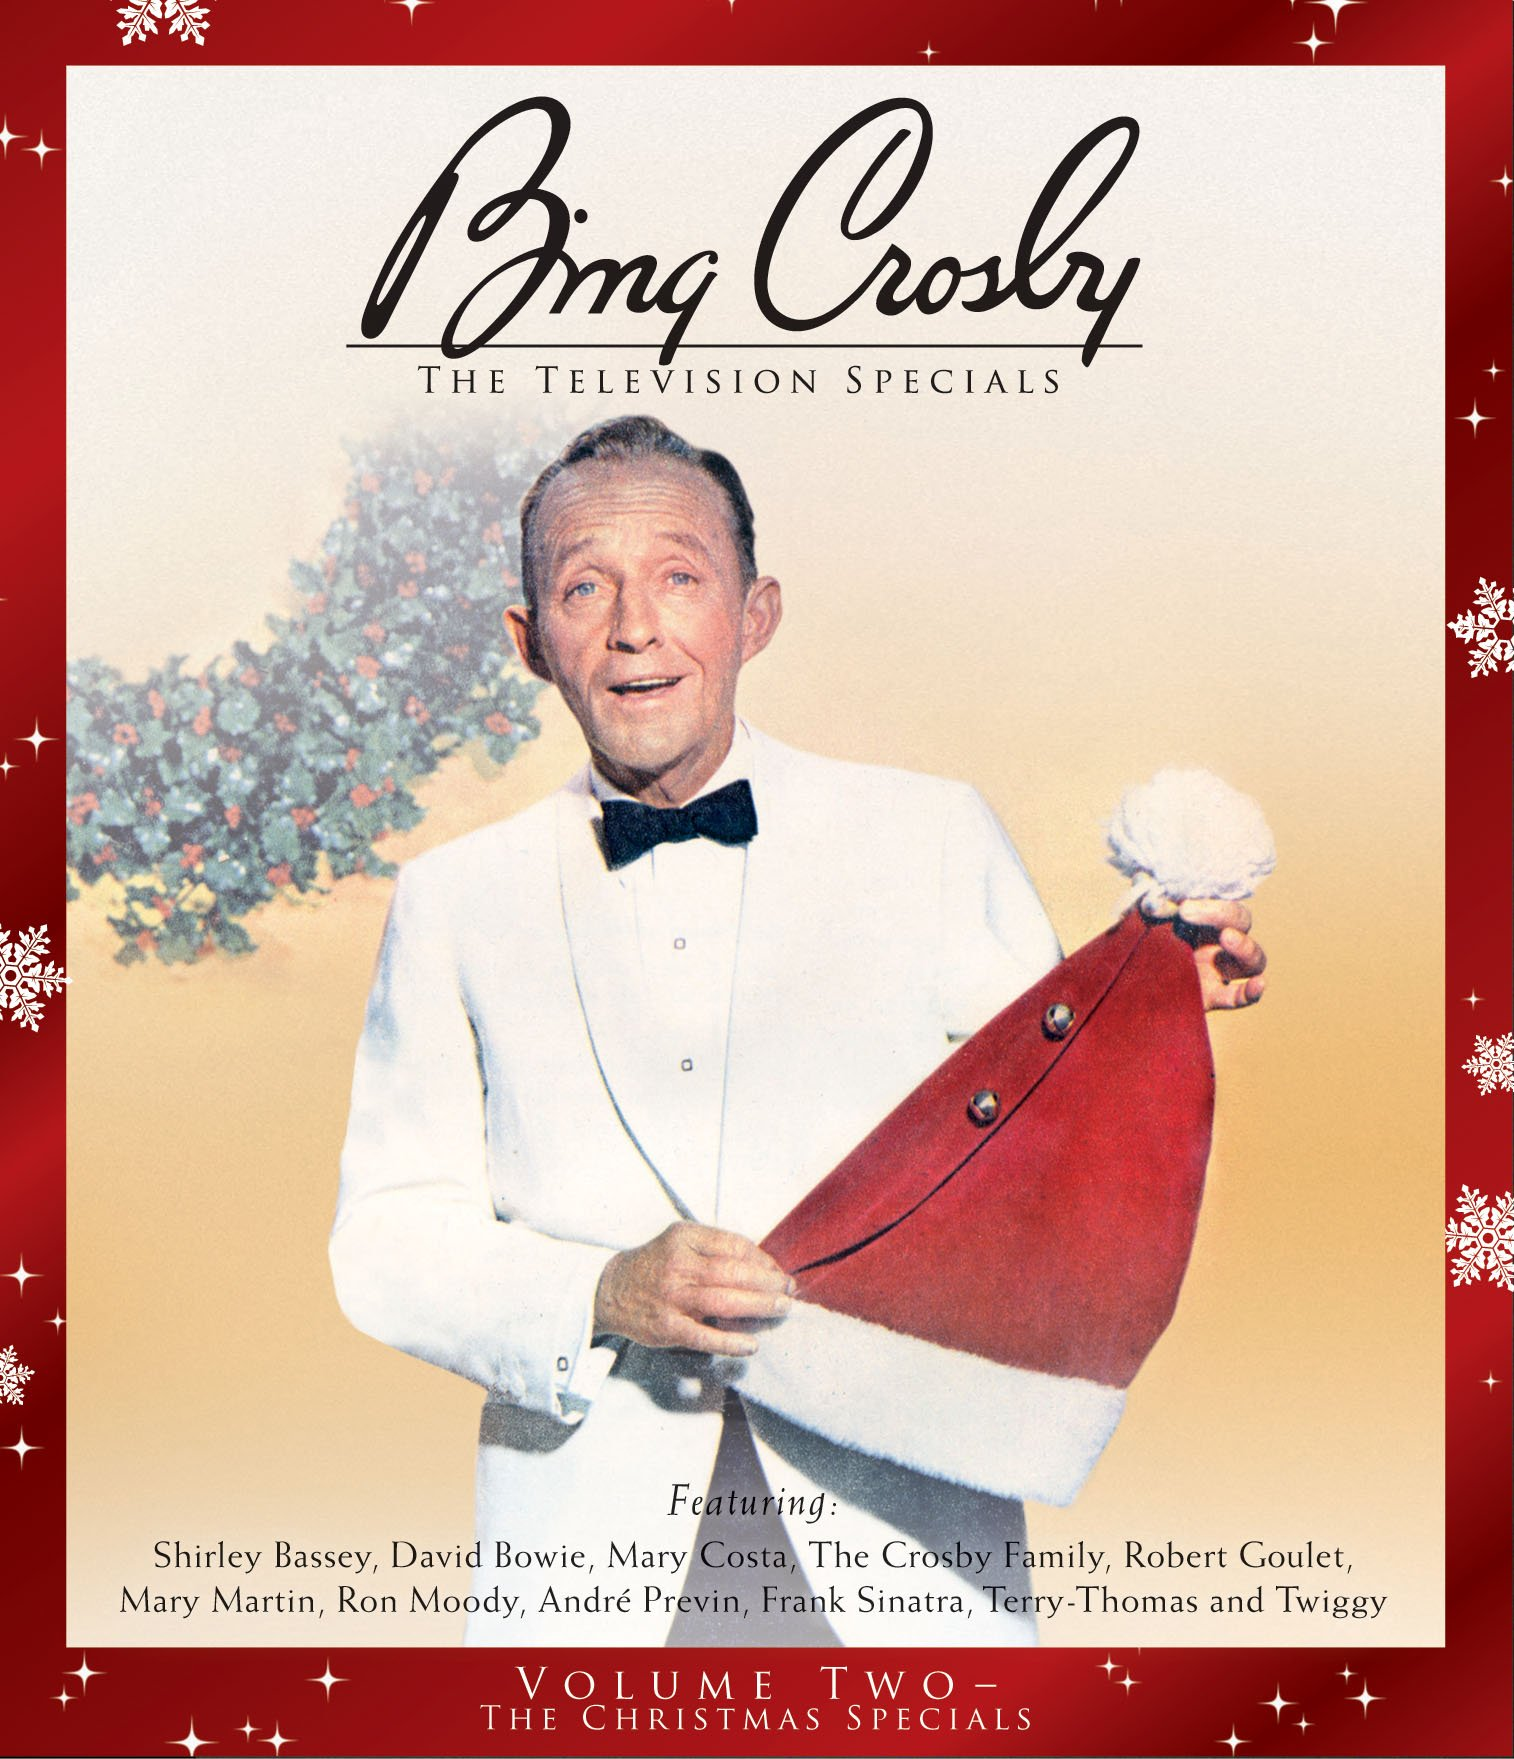 This is a 2 DVD set. DVD 1 is 2 episodes of a Bing Crosby show not related to Christmas. DVD 2 is two of his Christmas Specials from the 1970s, including his very last TV special. Features Shirley Bassey, David Bowie, Mary Costa, The Crosby Family, Robert Goulet, Mary Martin, Ron Moody, Andre Previn, Frank Sinatra, Terry-Thomas and Twiggy.